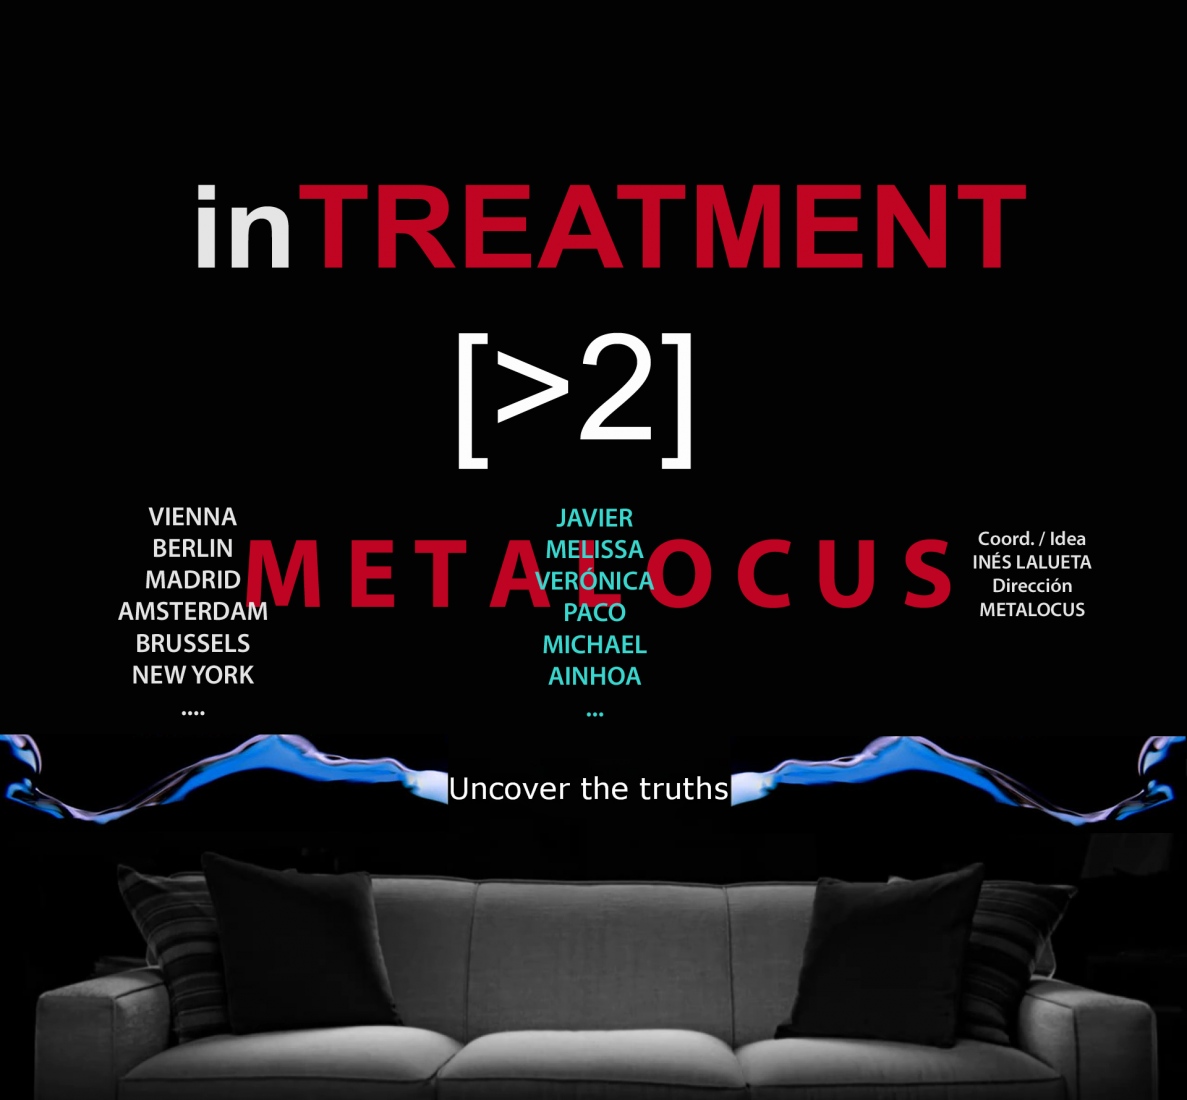 Cover INTREATMENT [>2] - METALOCUS. © METALOCUS